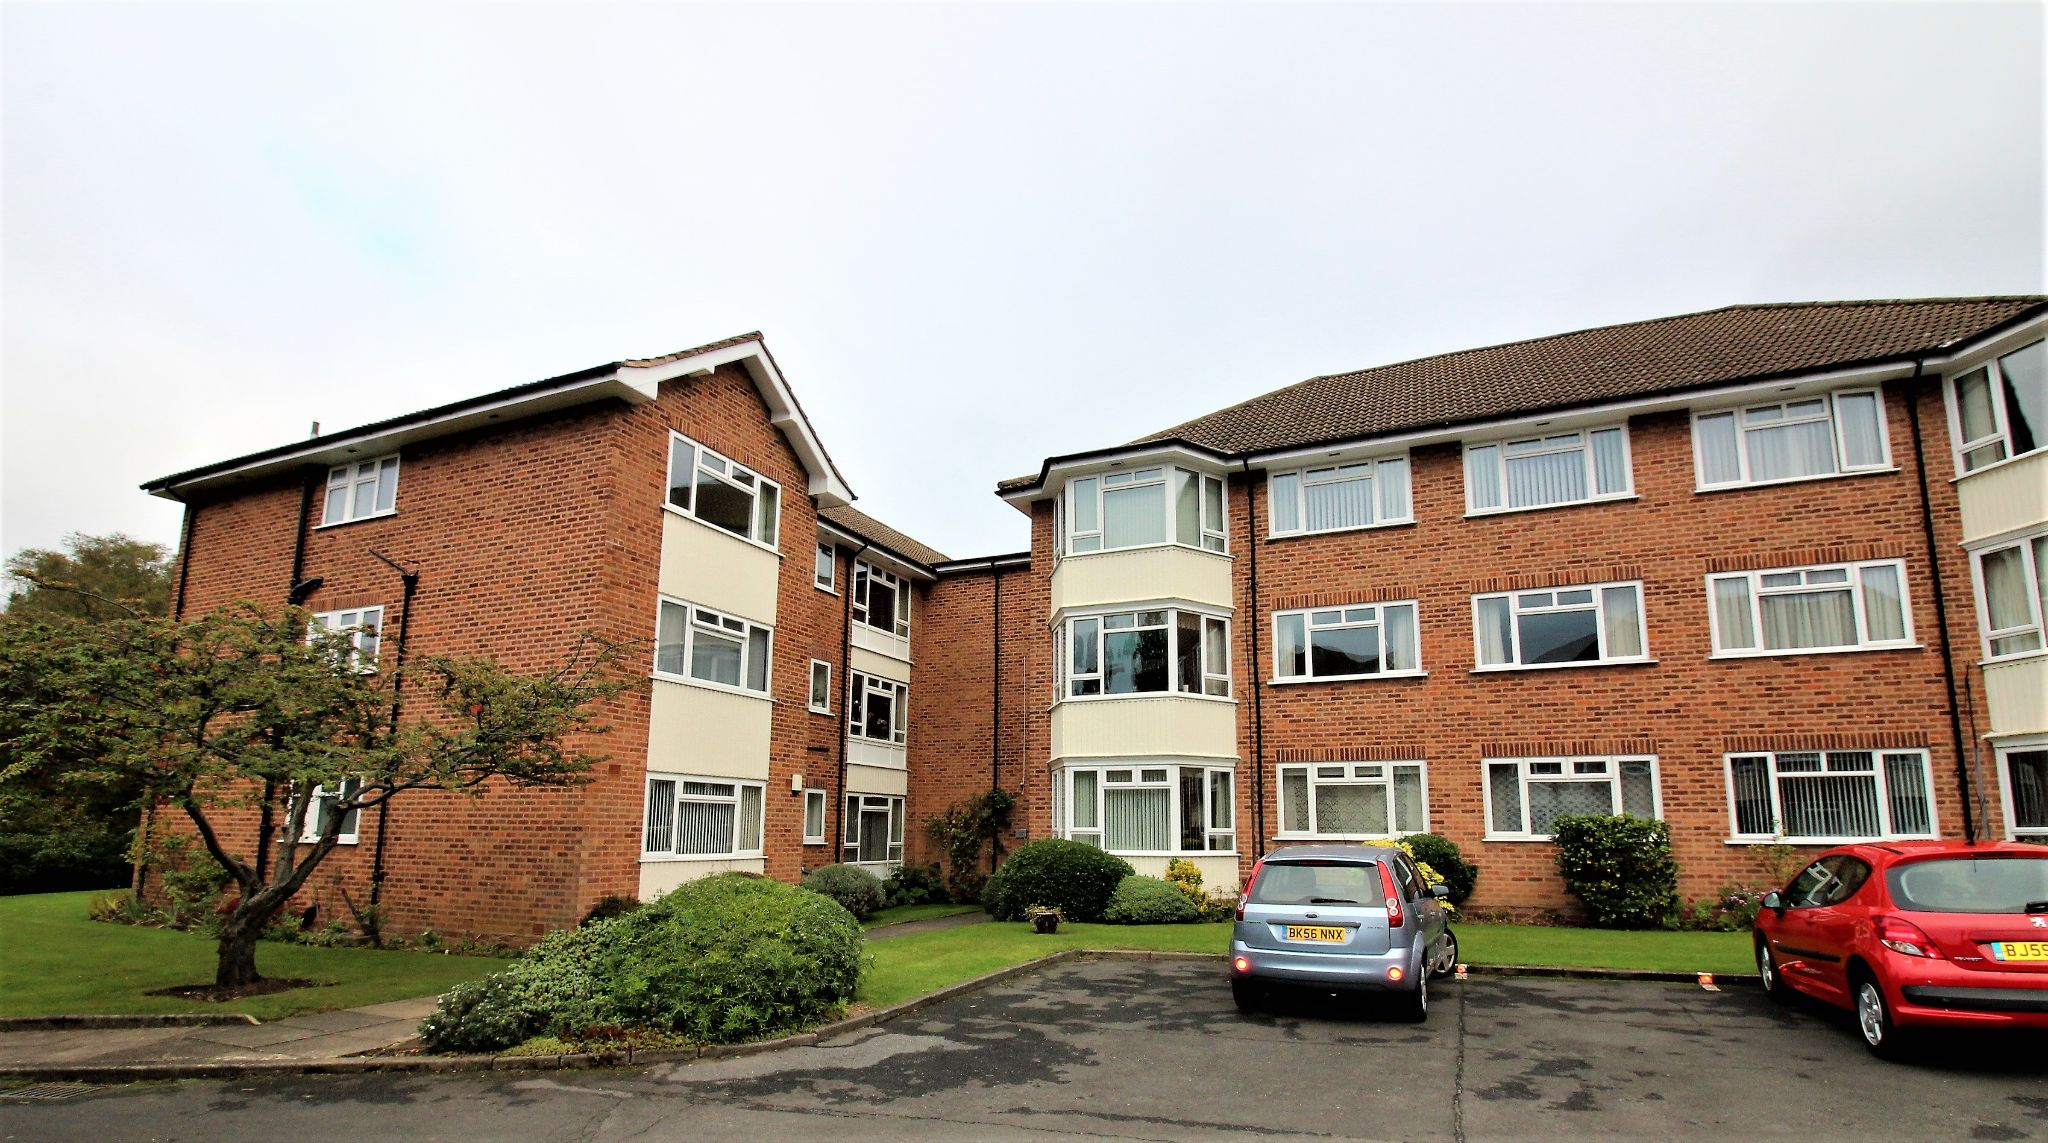 3 bedroom apartment flat/apartment Let Agreed in Solihull - Photograph 10.